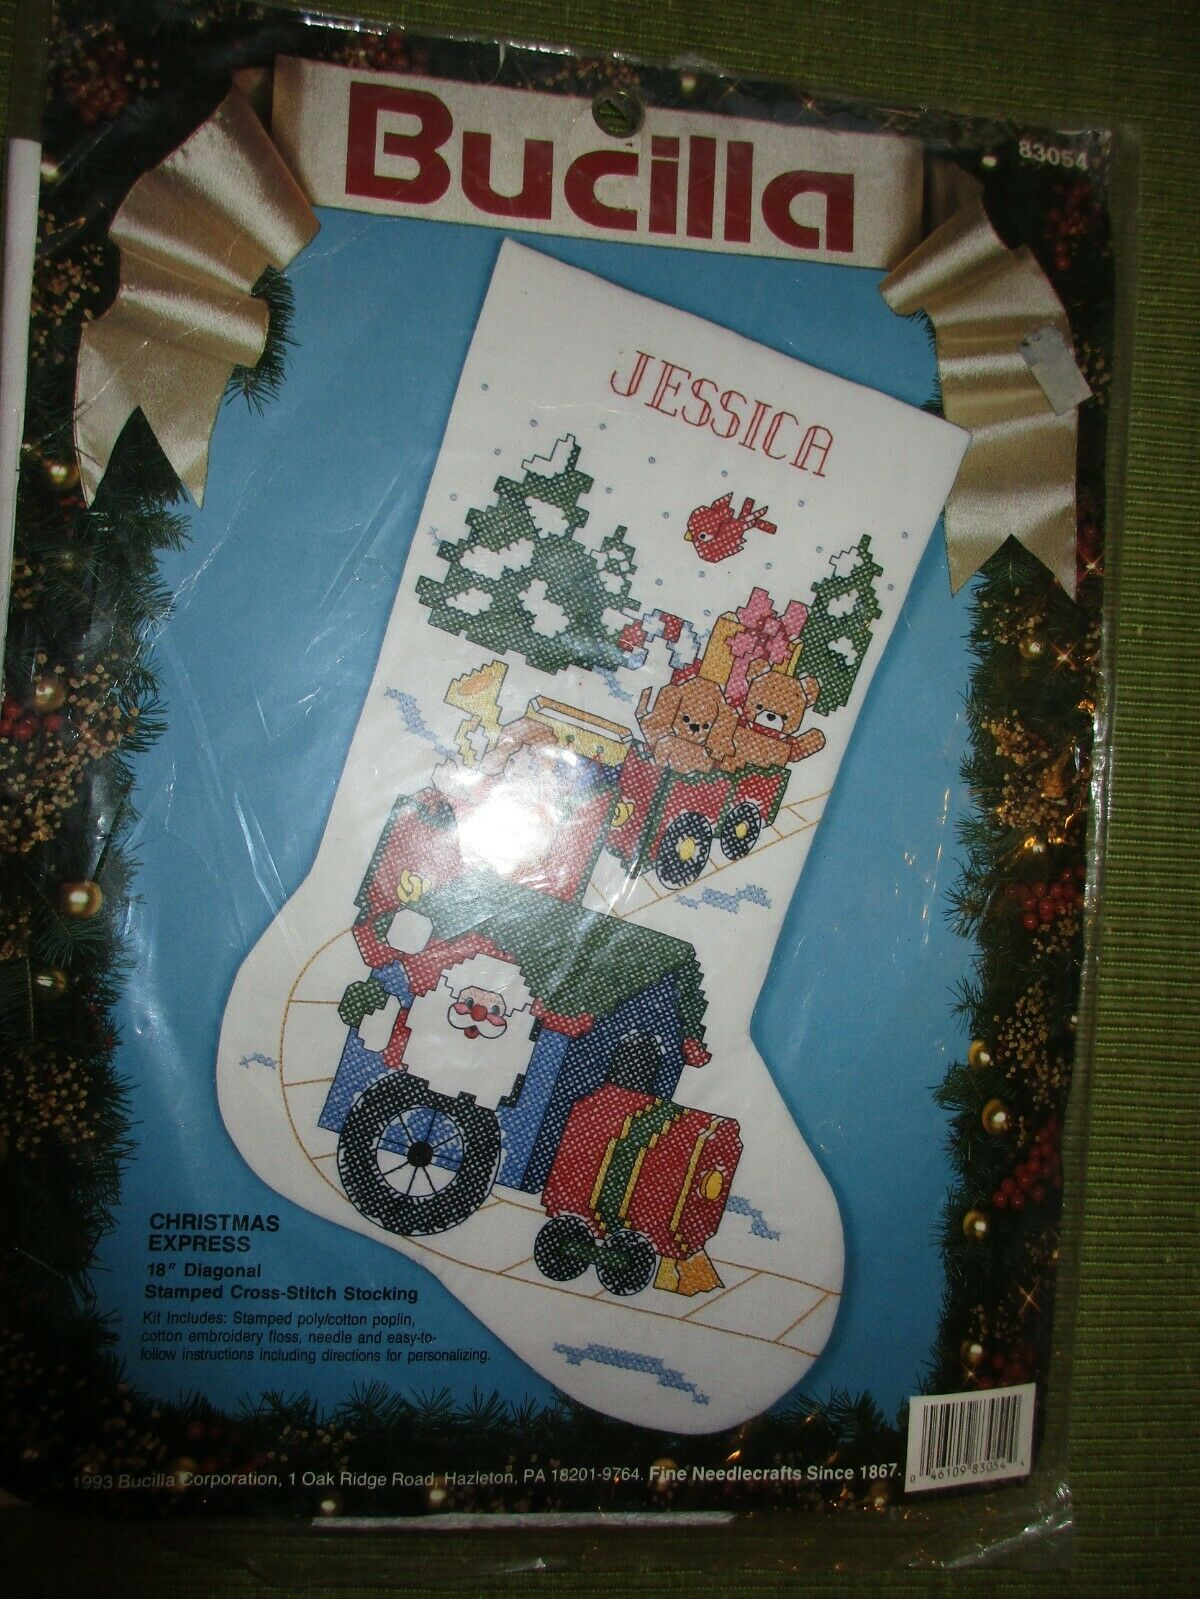 Bucilla Personalized Stocking 'Christmas Express' Stamped Cr